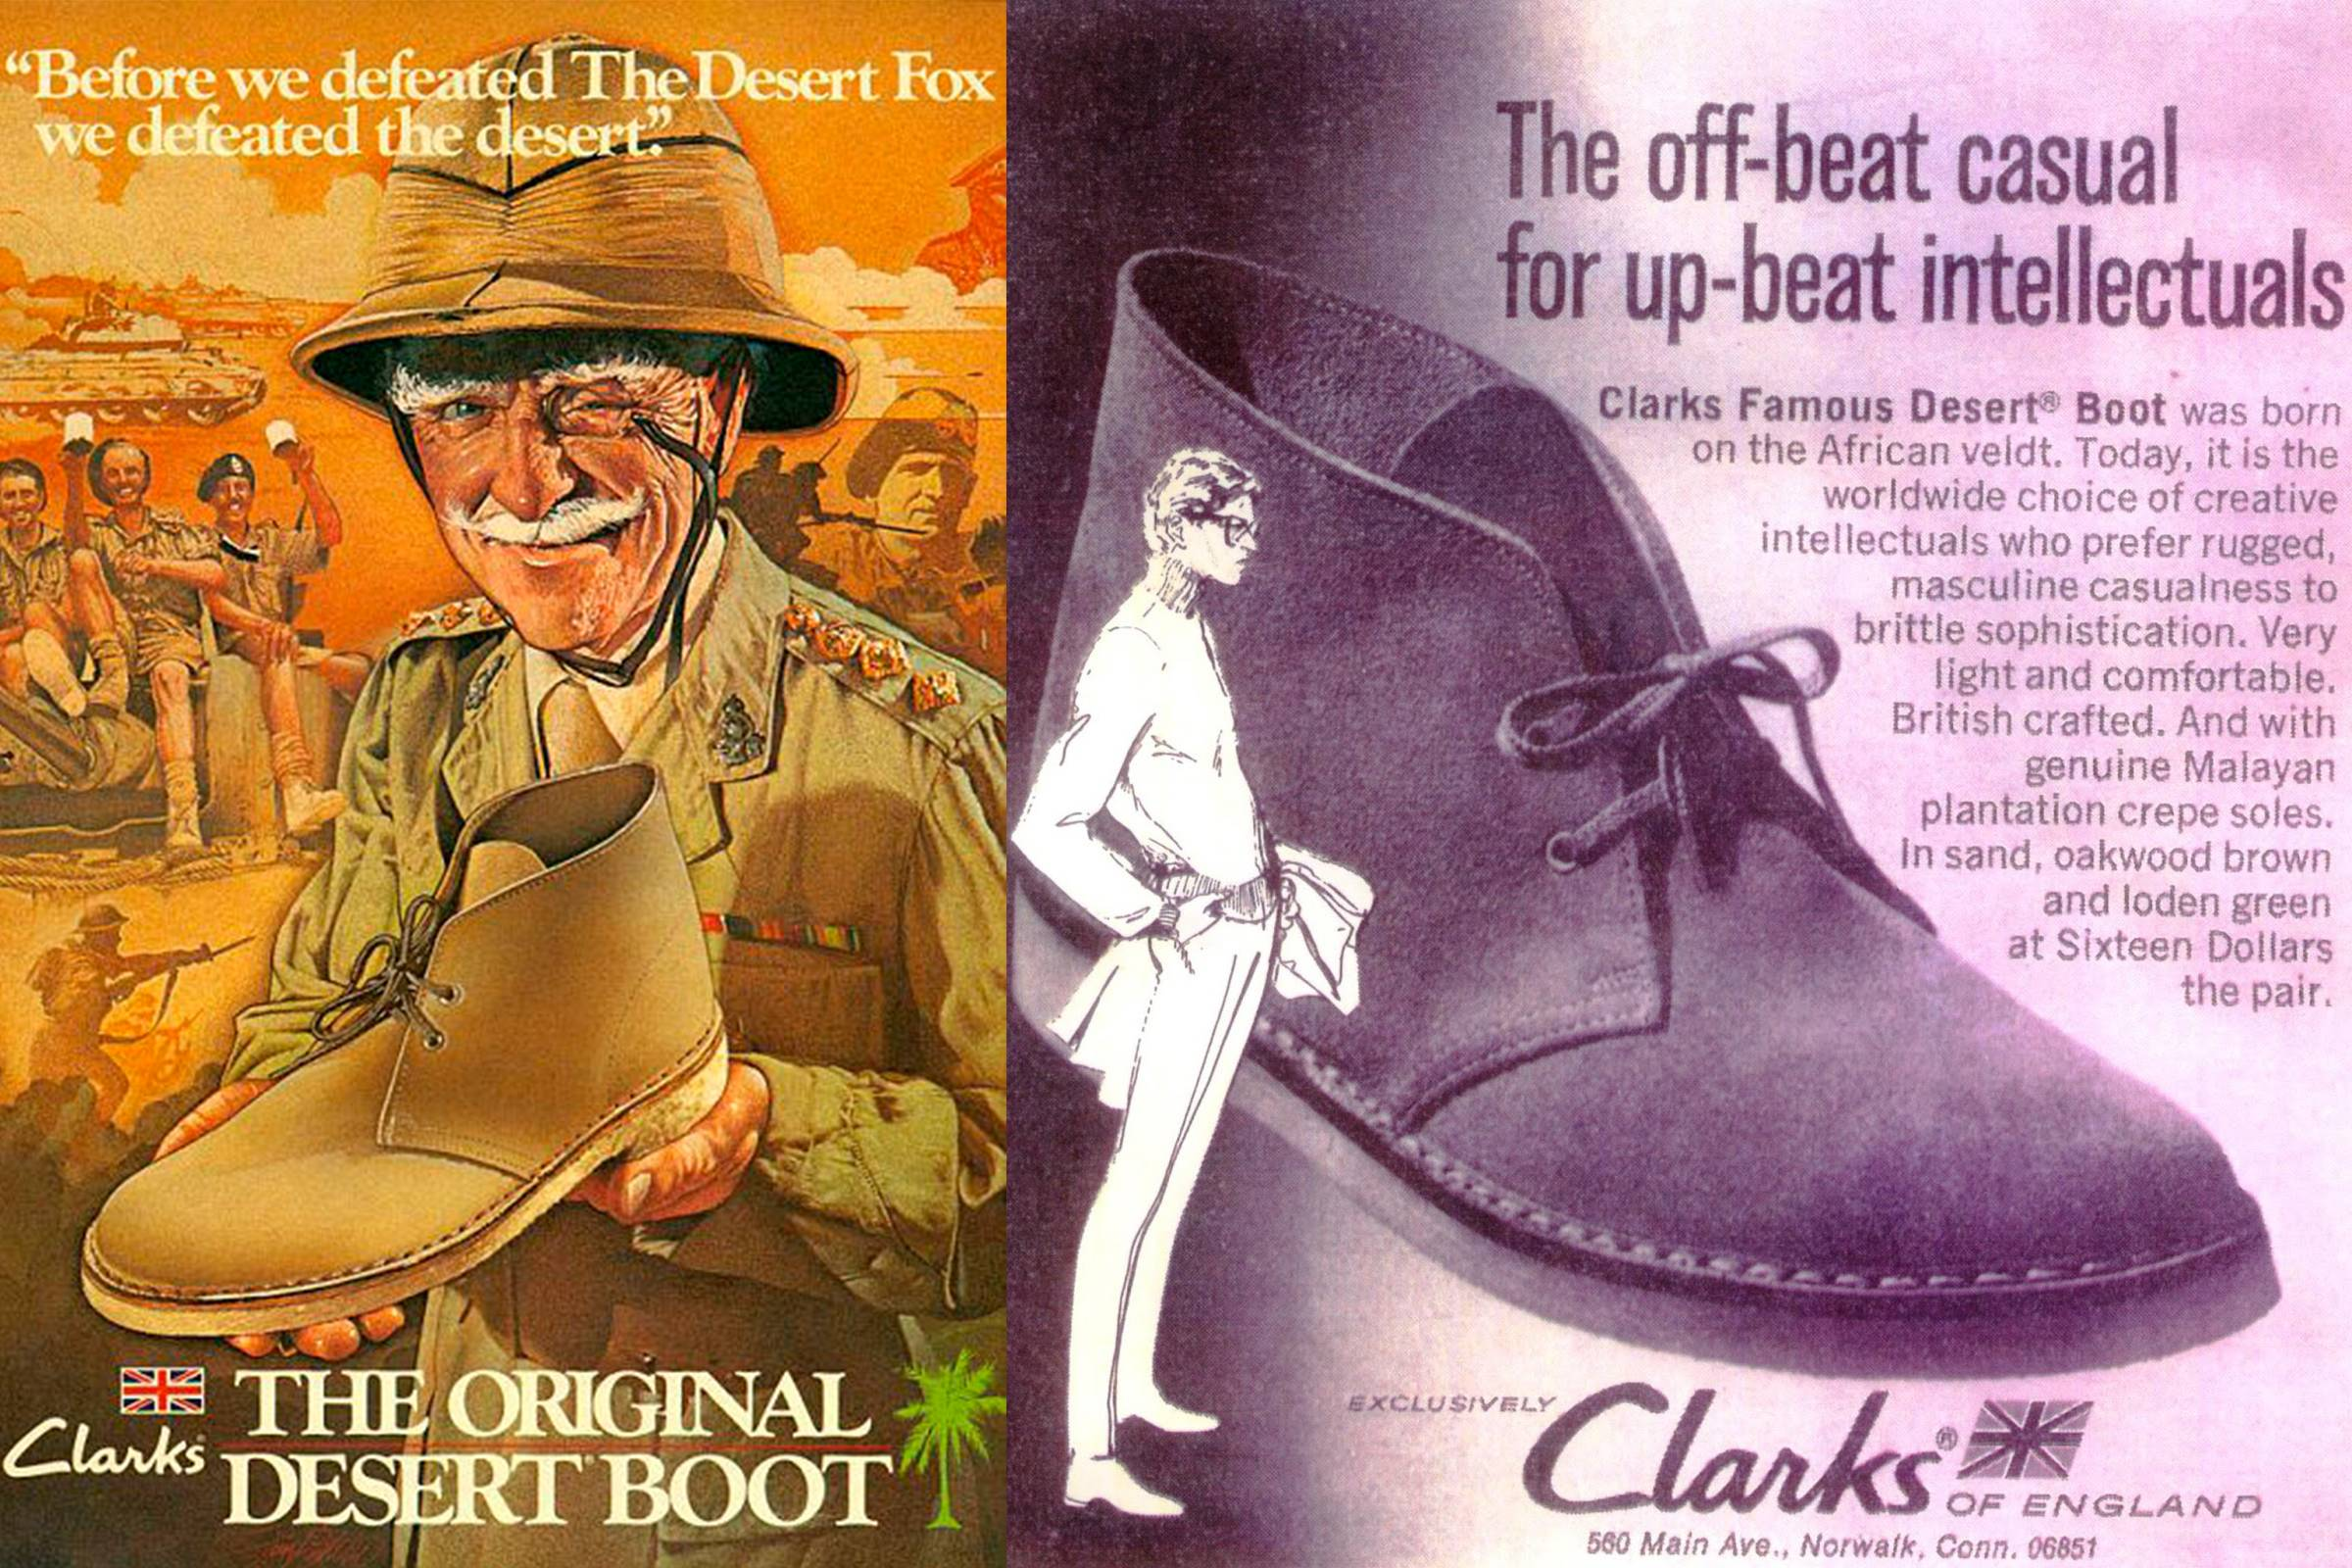 Original advertisements for Clarks' Desert Boot (c. 1950)